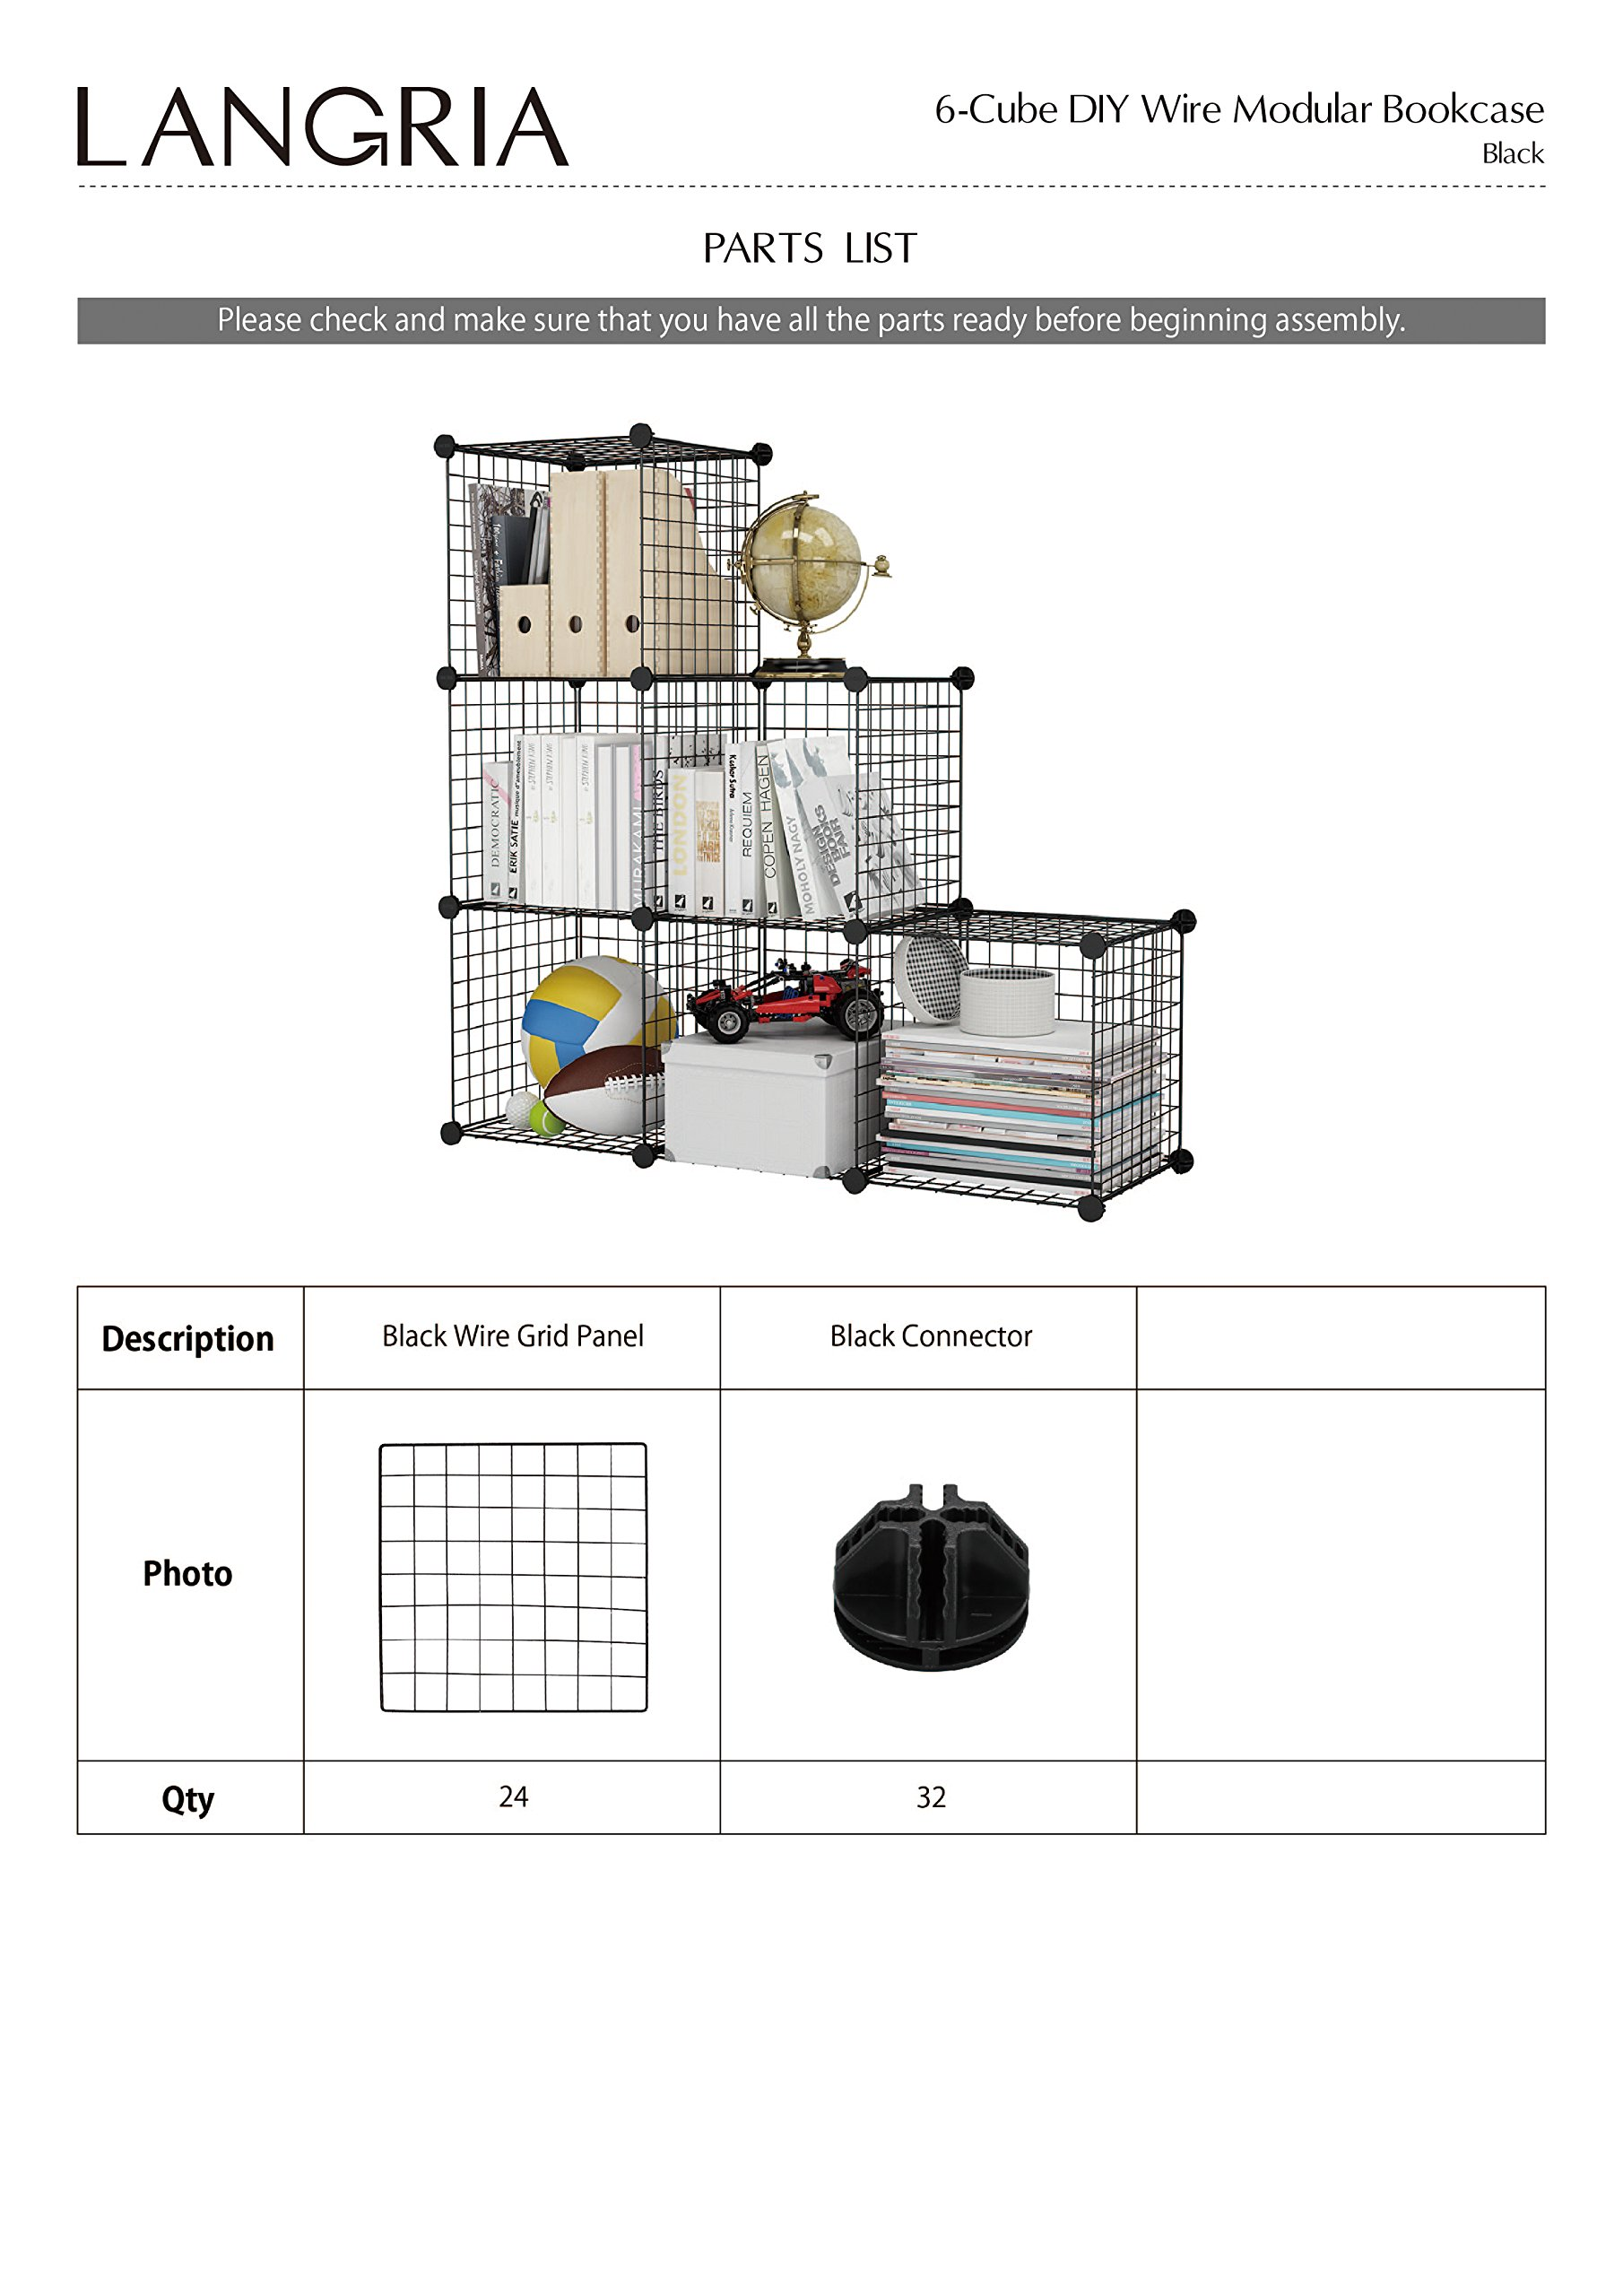 LANGRIA 24 pcs Metal Wire Storage Cubes Organizer, DIY Small Animal Cage for Rabbit, Guinea Pigs, Puppy | Pet Products Portable Metal Wire Yard Fence (Black) by LANGRIA (Image #6)